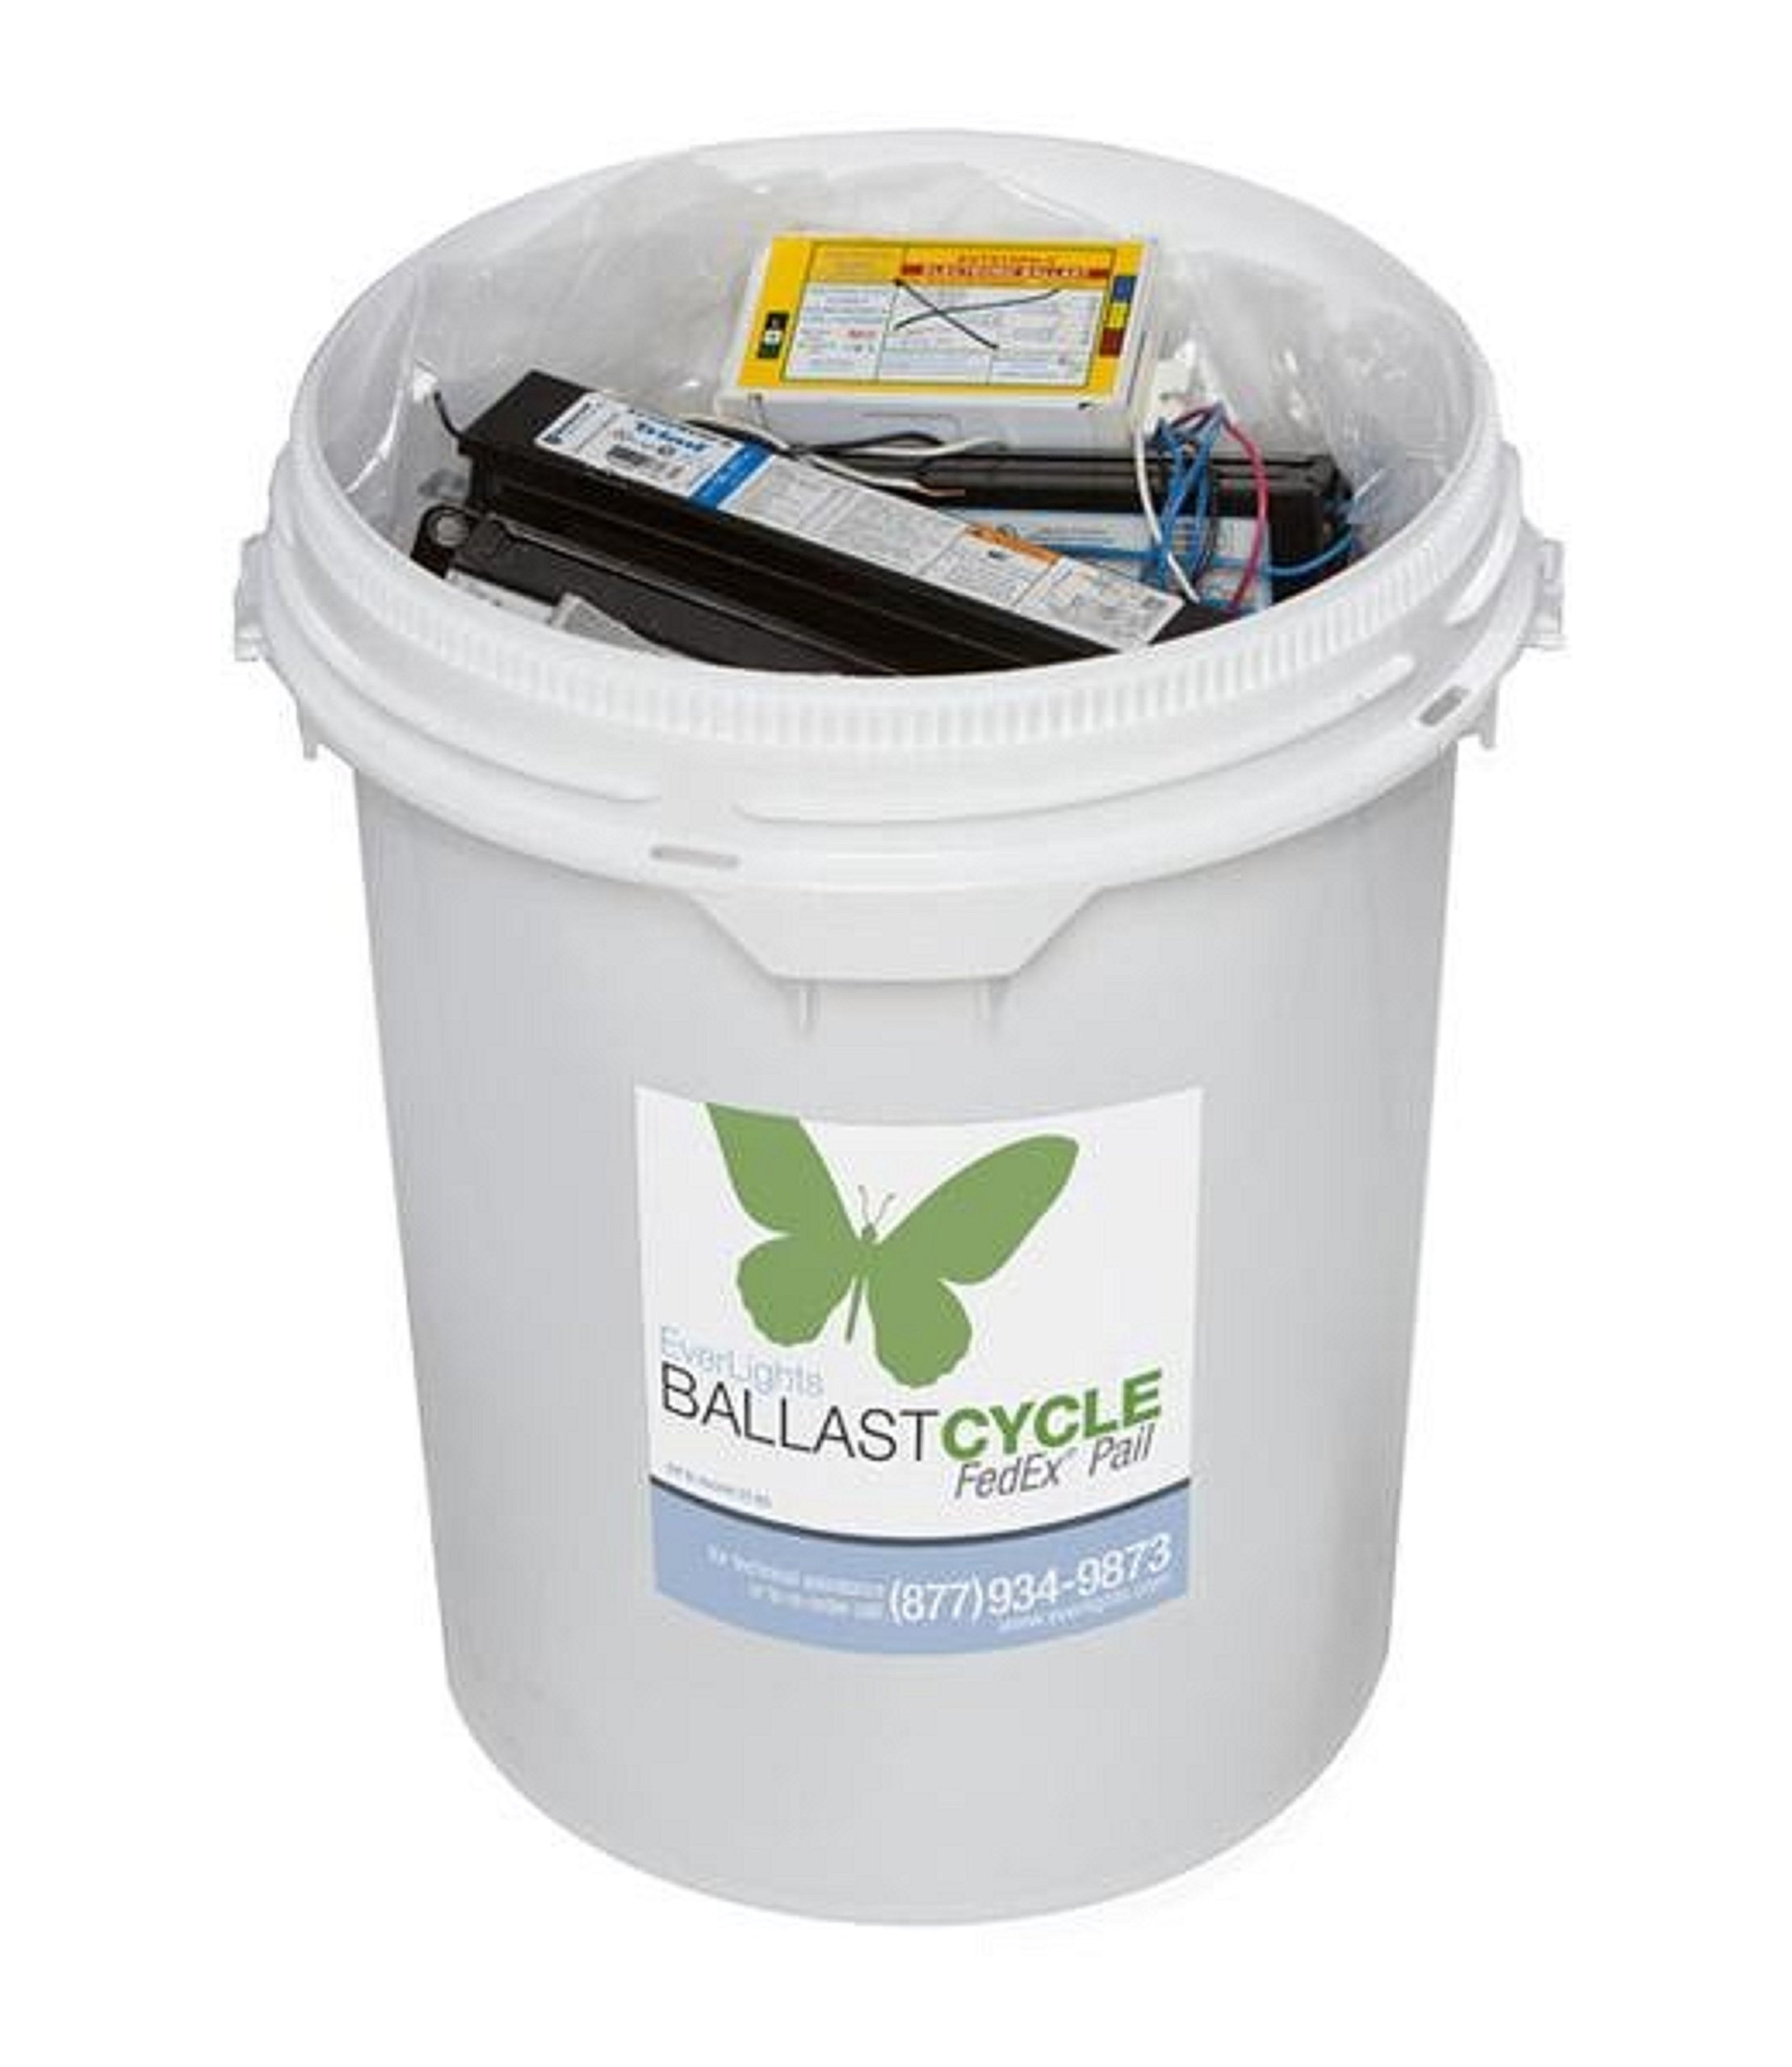 EverLights RBALPAIL Ballast Cycle Recycling Kit, Medium